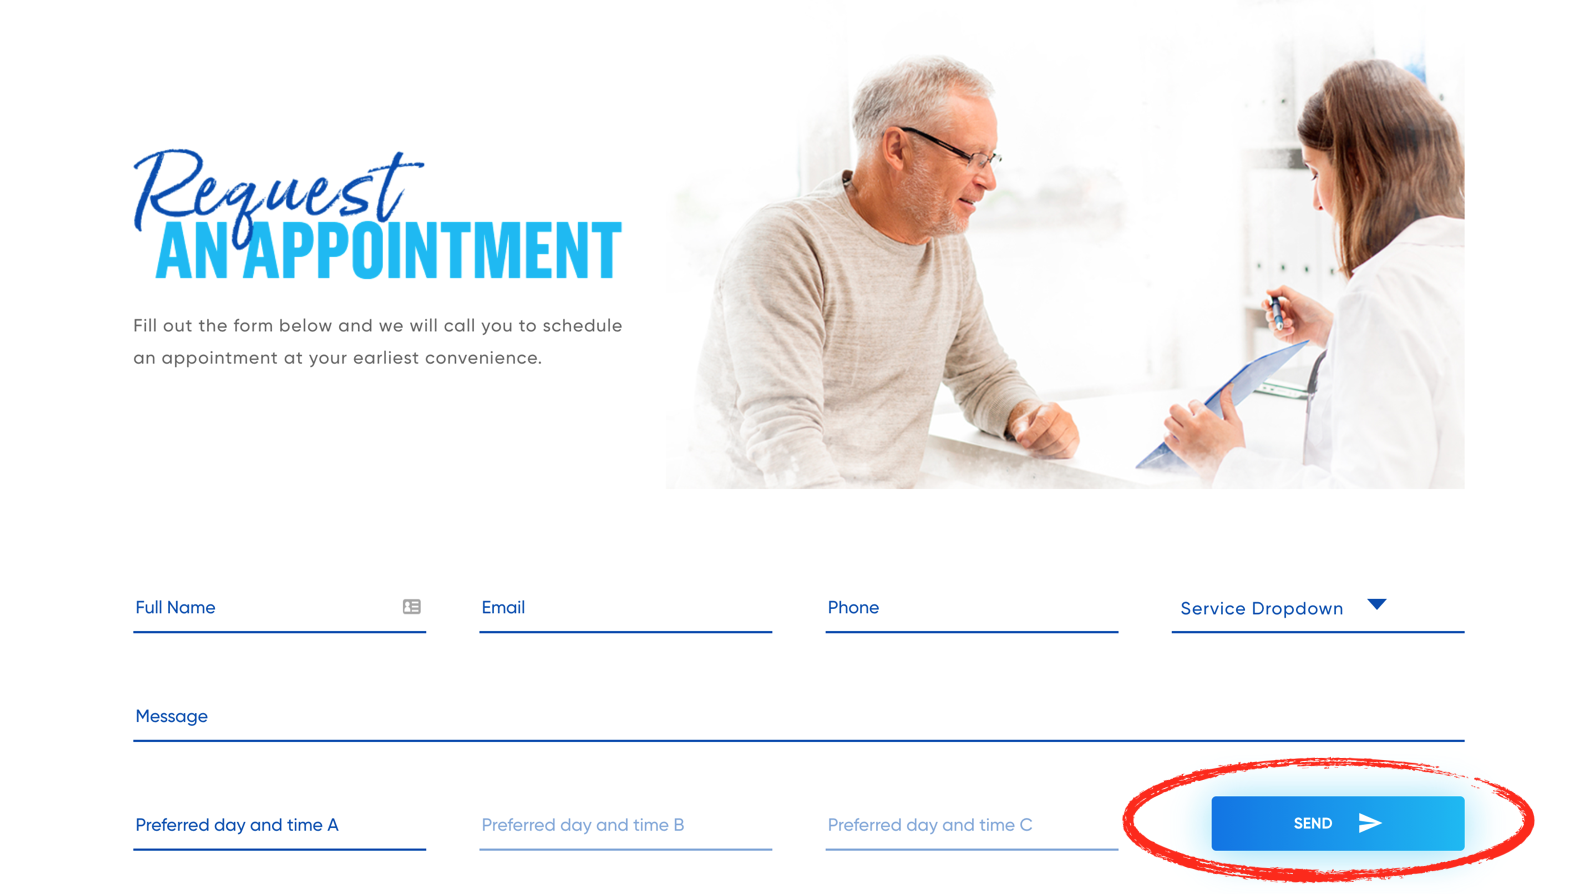 Request an Appointment Example Page